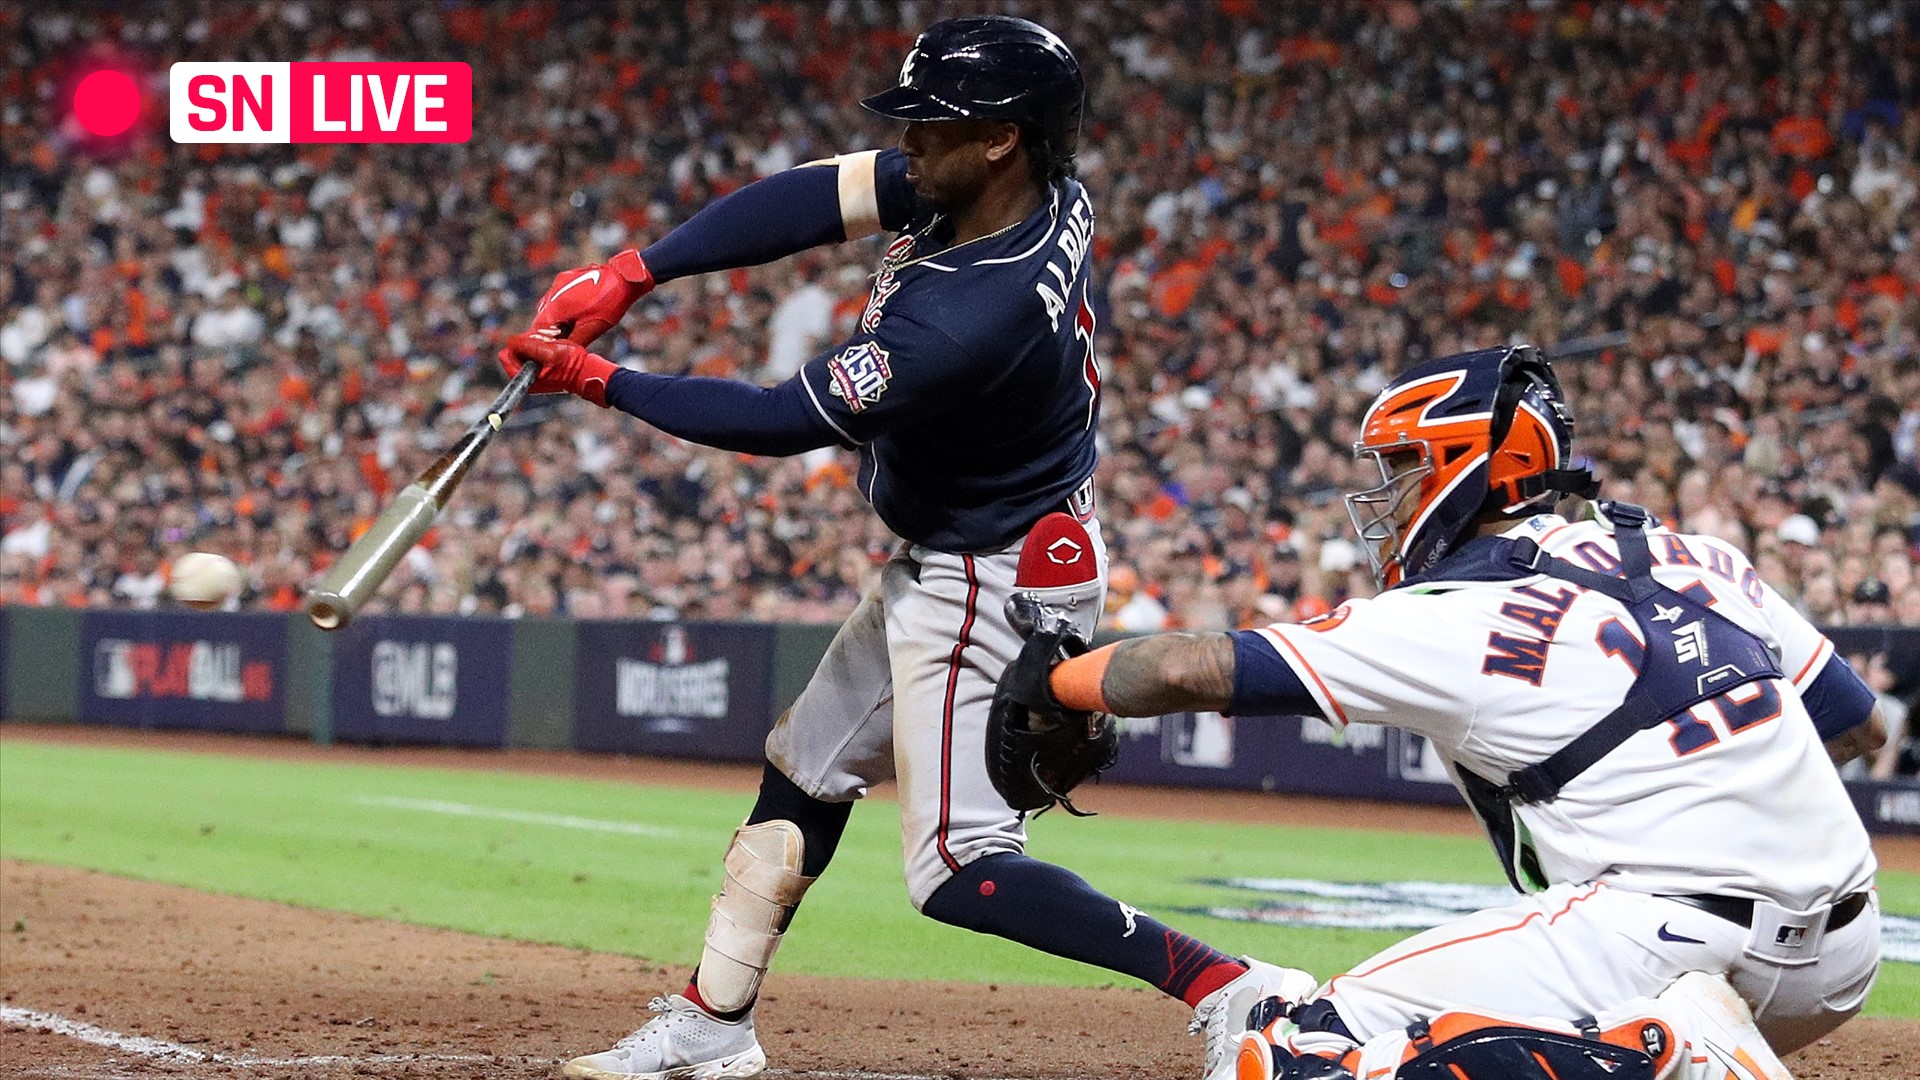 Astros vs. Braves live score, updates, highlights from Game 2 of the 2021 World Series